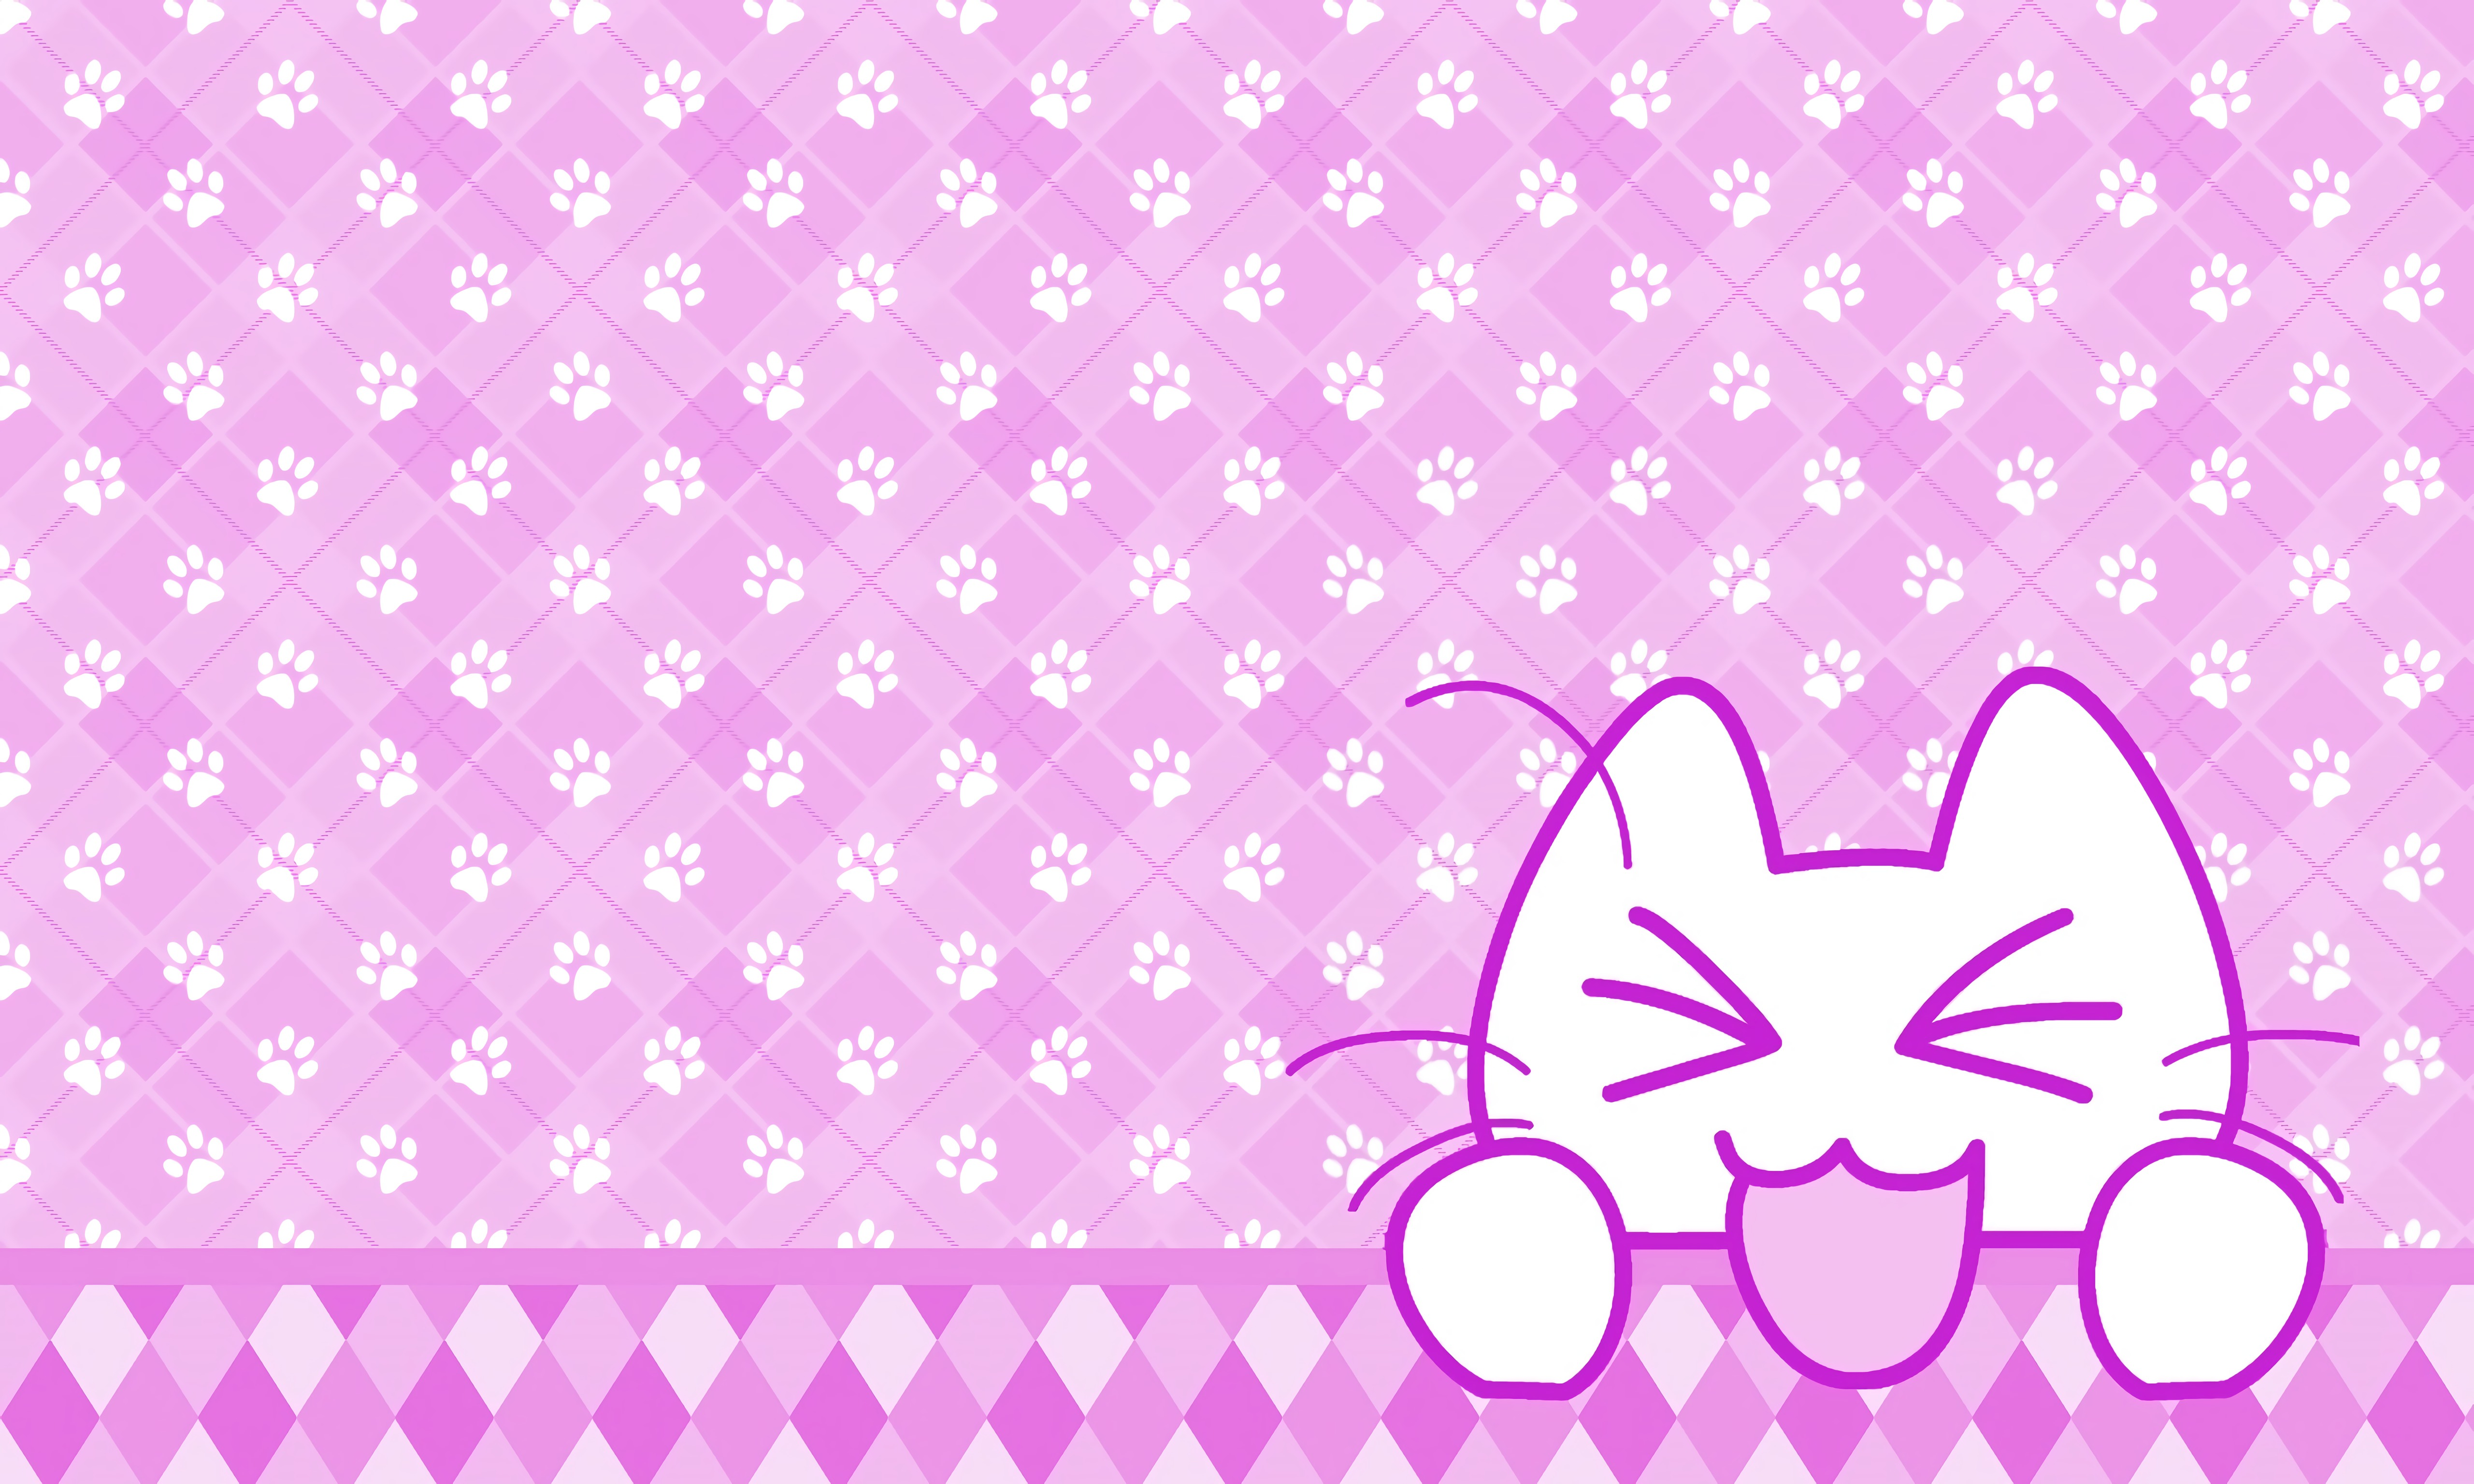 124626 download wallpaper Vector, Cat, Protruding Tongue, Tongue Stuck Out, Funny, Art screensavers and pictures for free